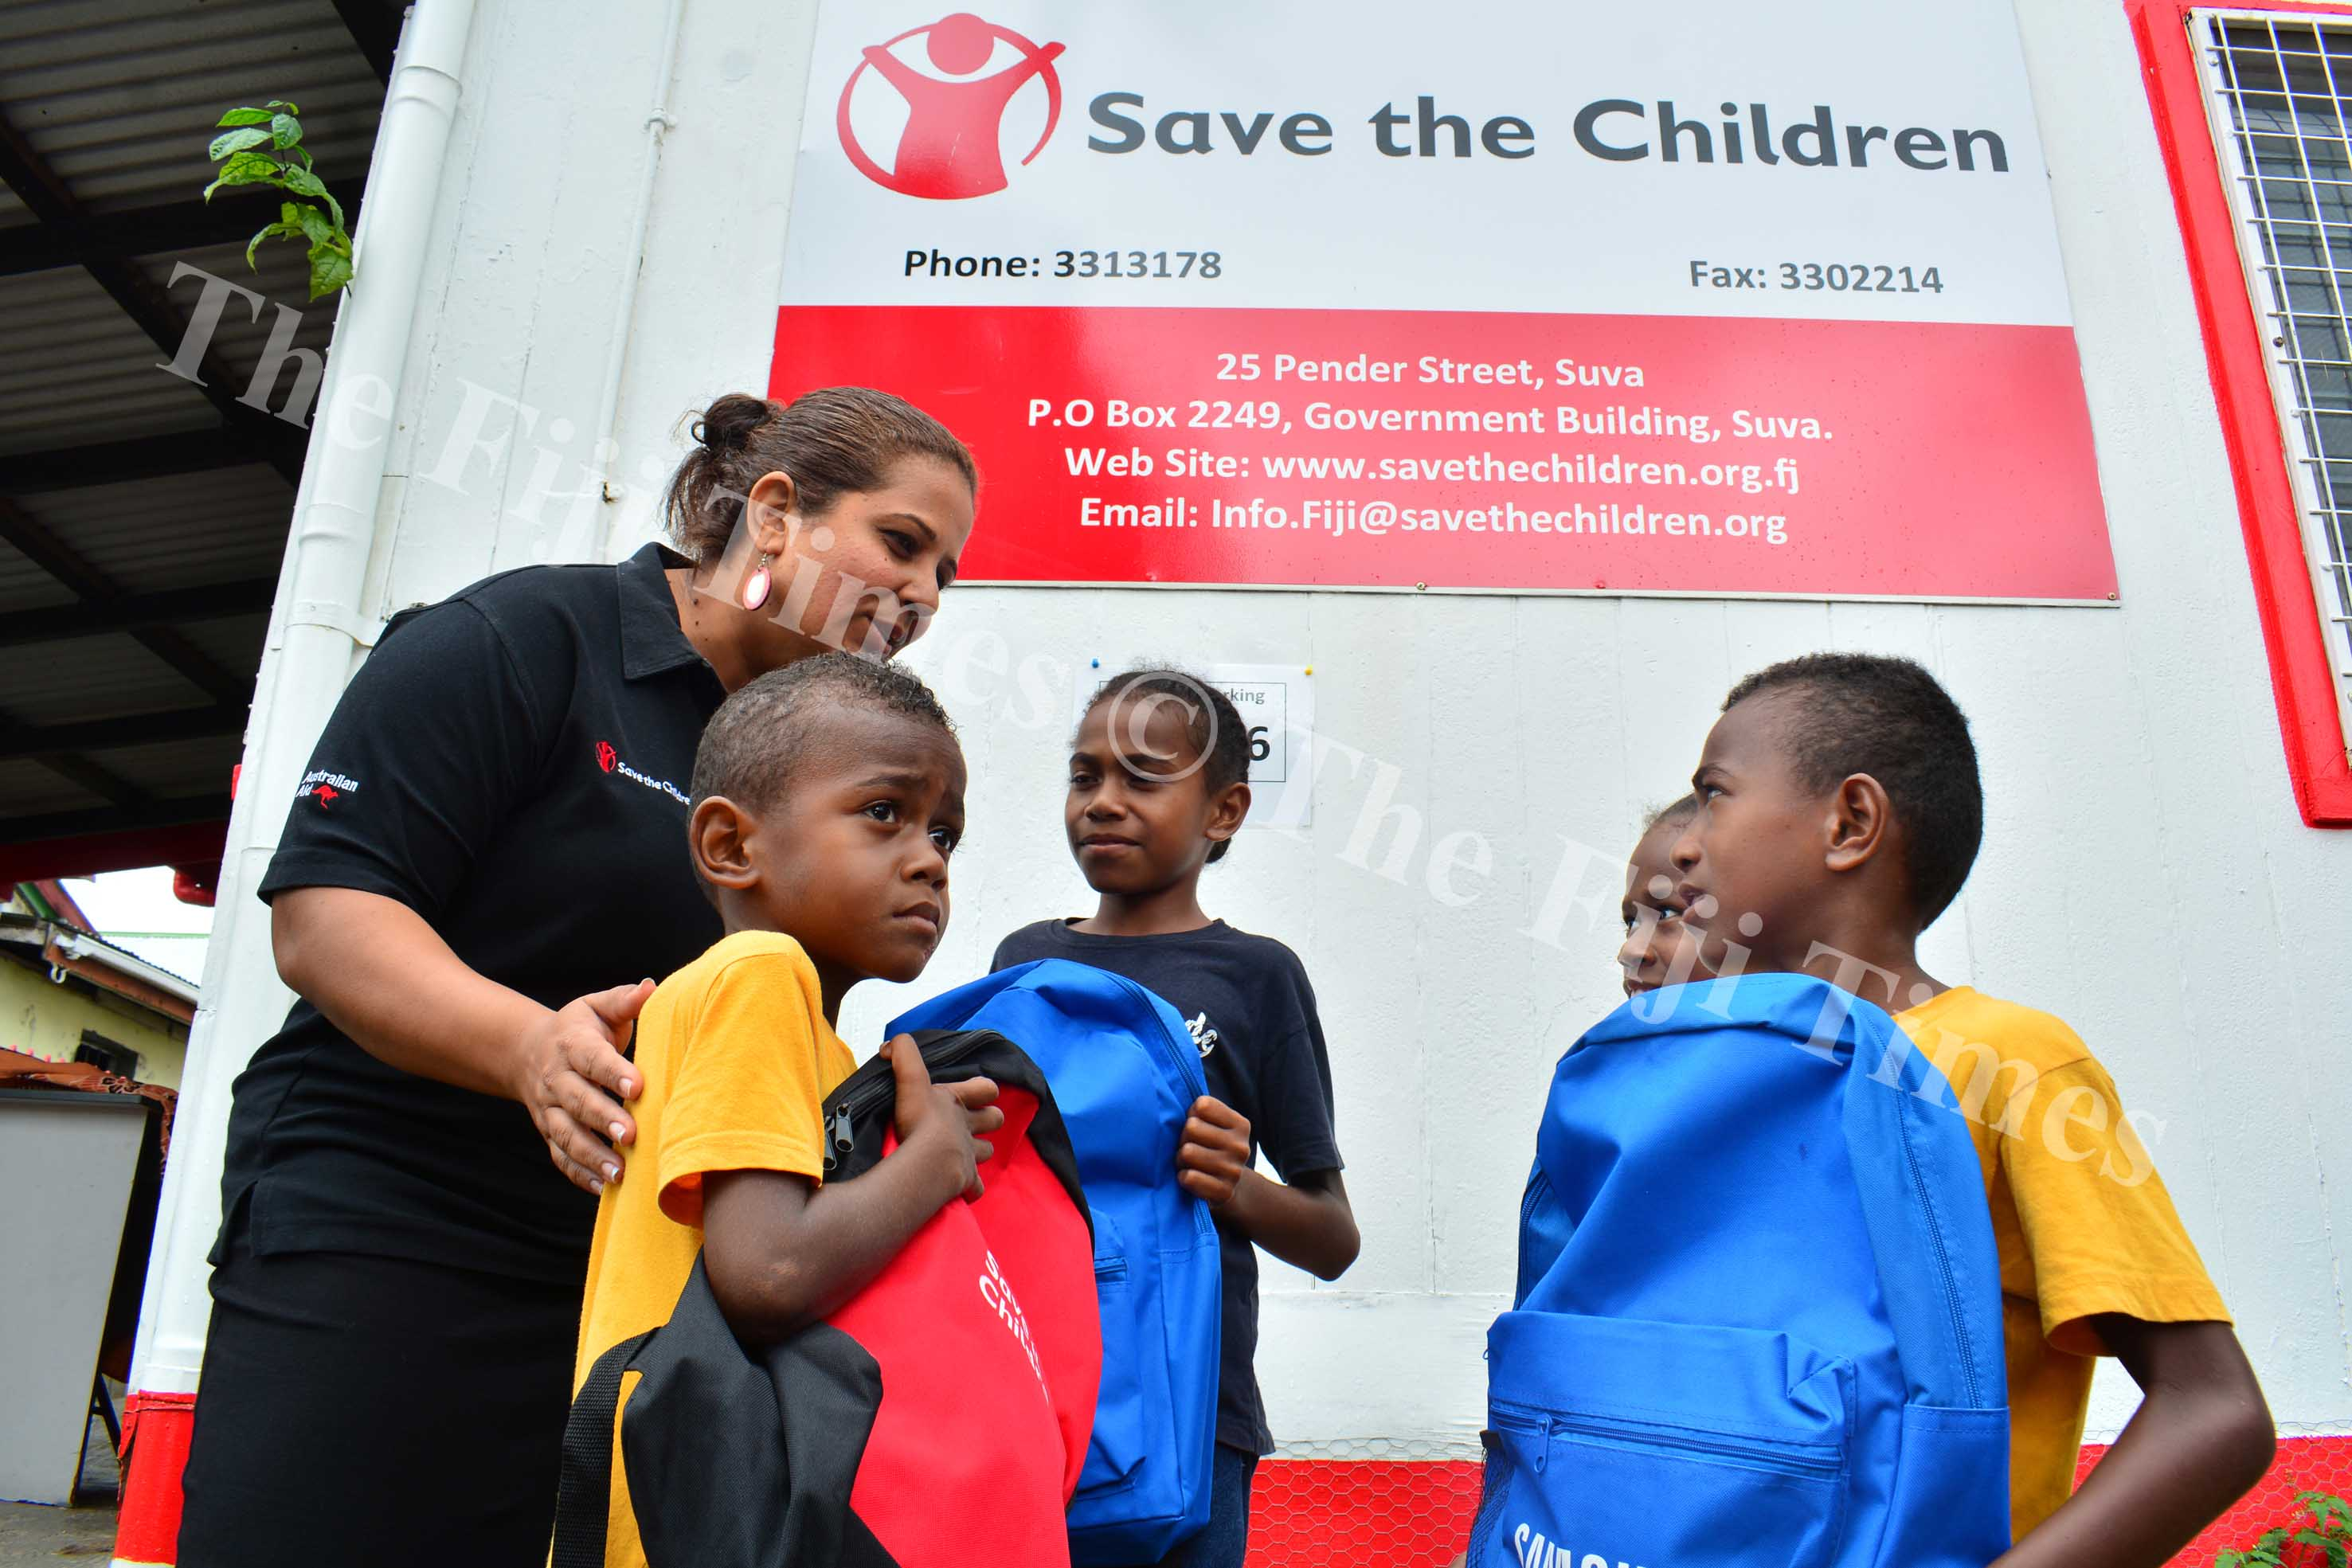 Save the Children Fiji CEO Iris Low-McKennzie speaking to the Tanoa siblings after receiving bags from the NGO in Suva yesterday. Picture: JOVESA NAISUA